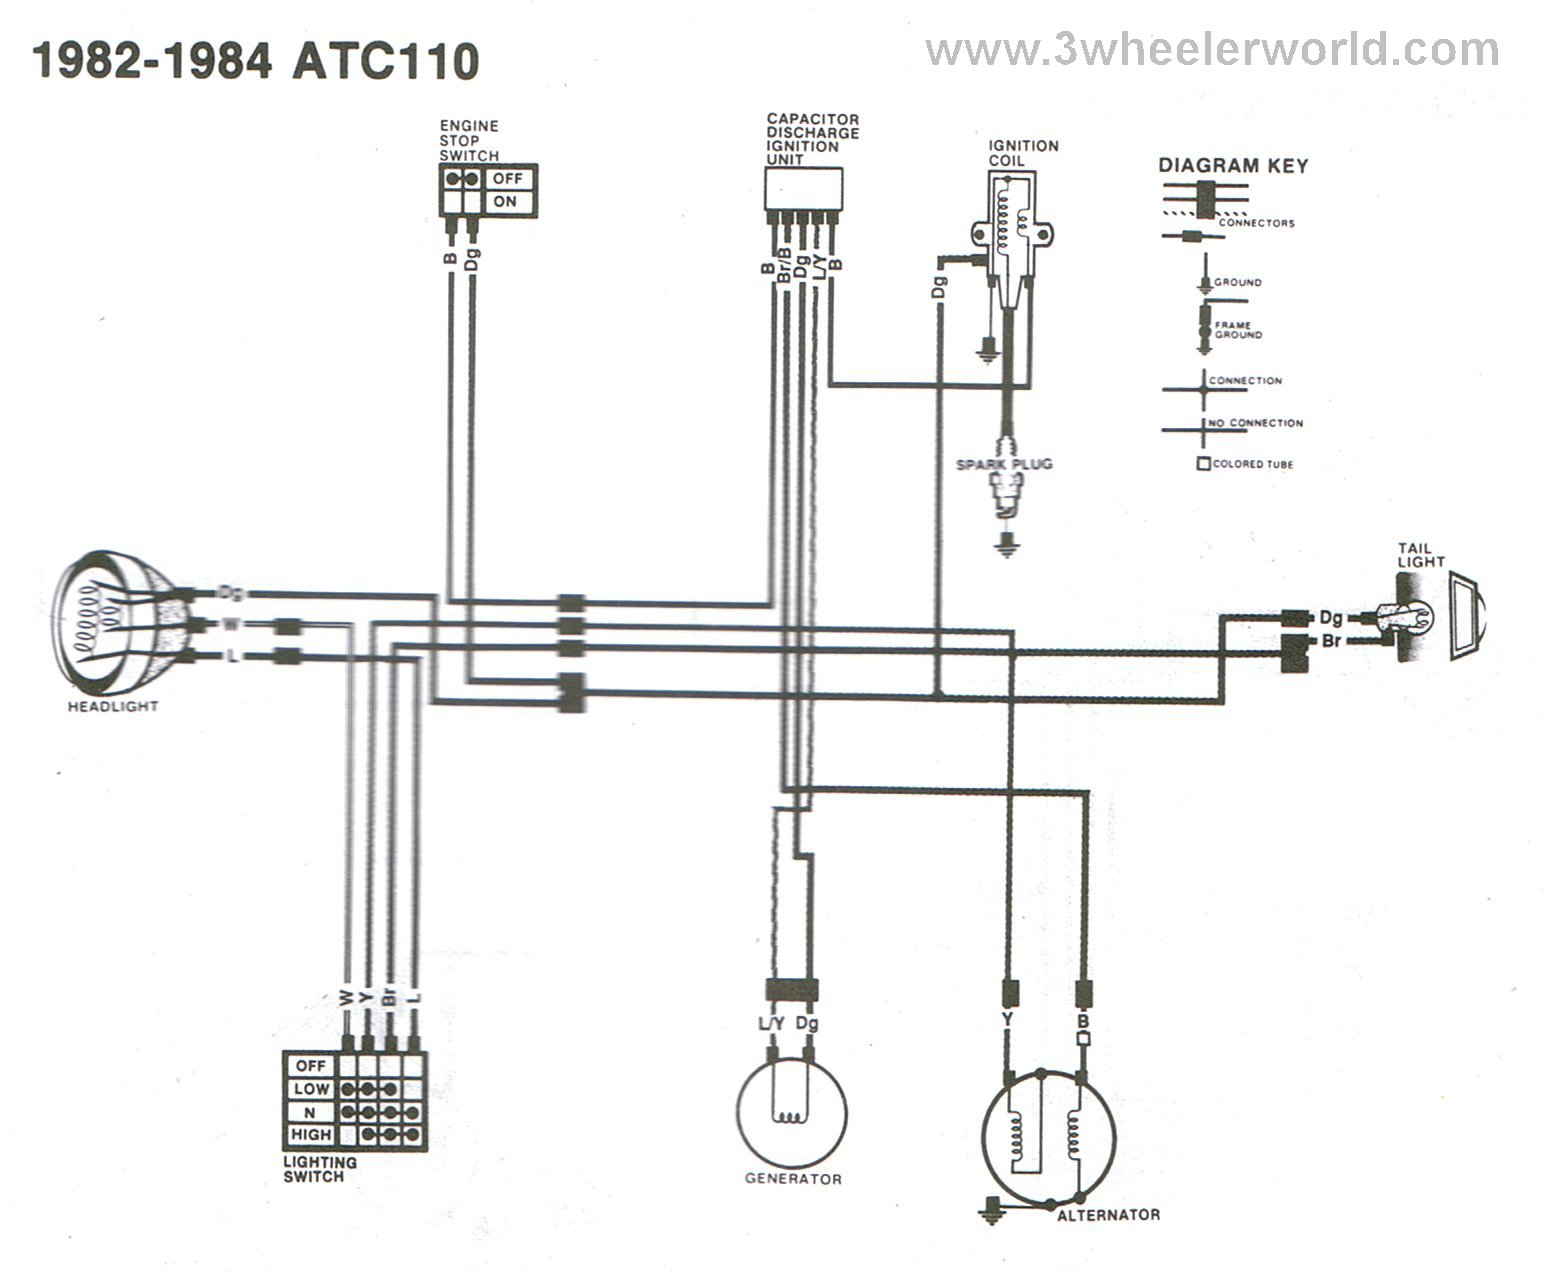 3wheeler world - atc110 wiring diagram honda trx 70 #15